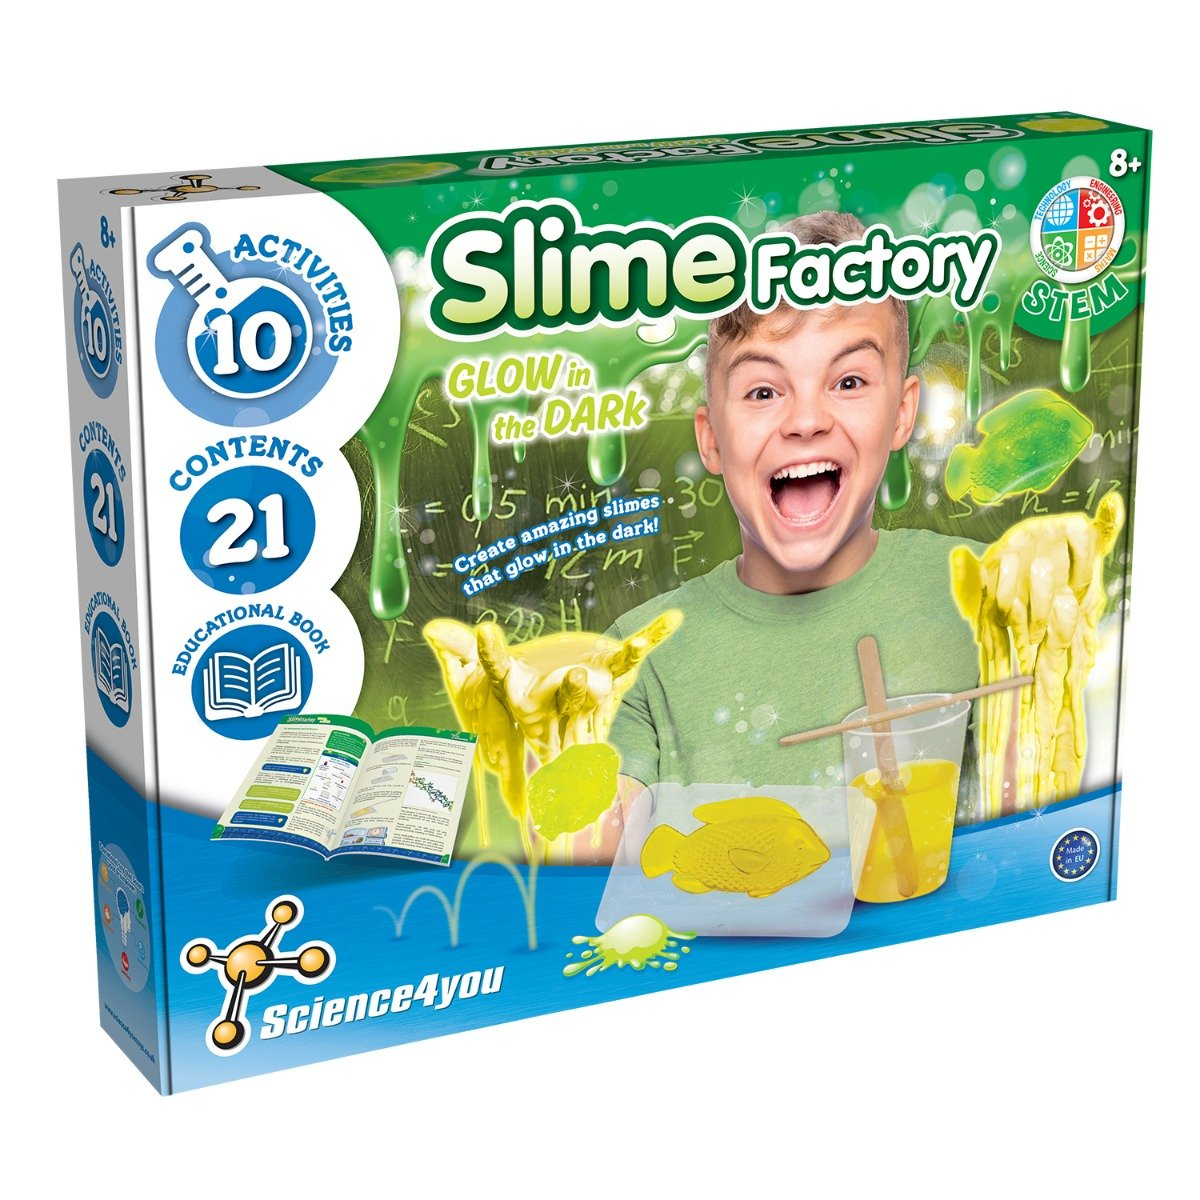 Joc educativ Science4you, fabrica de slime luminoasa